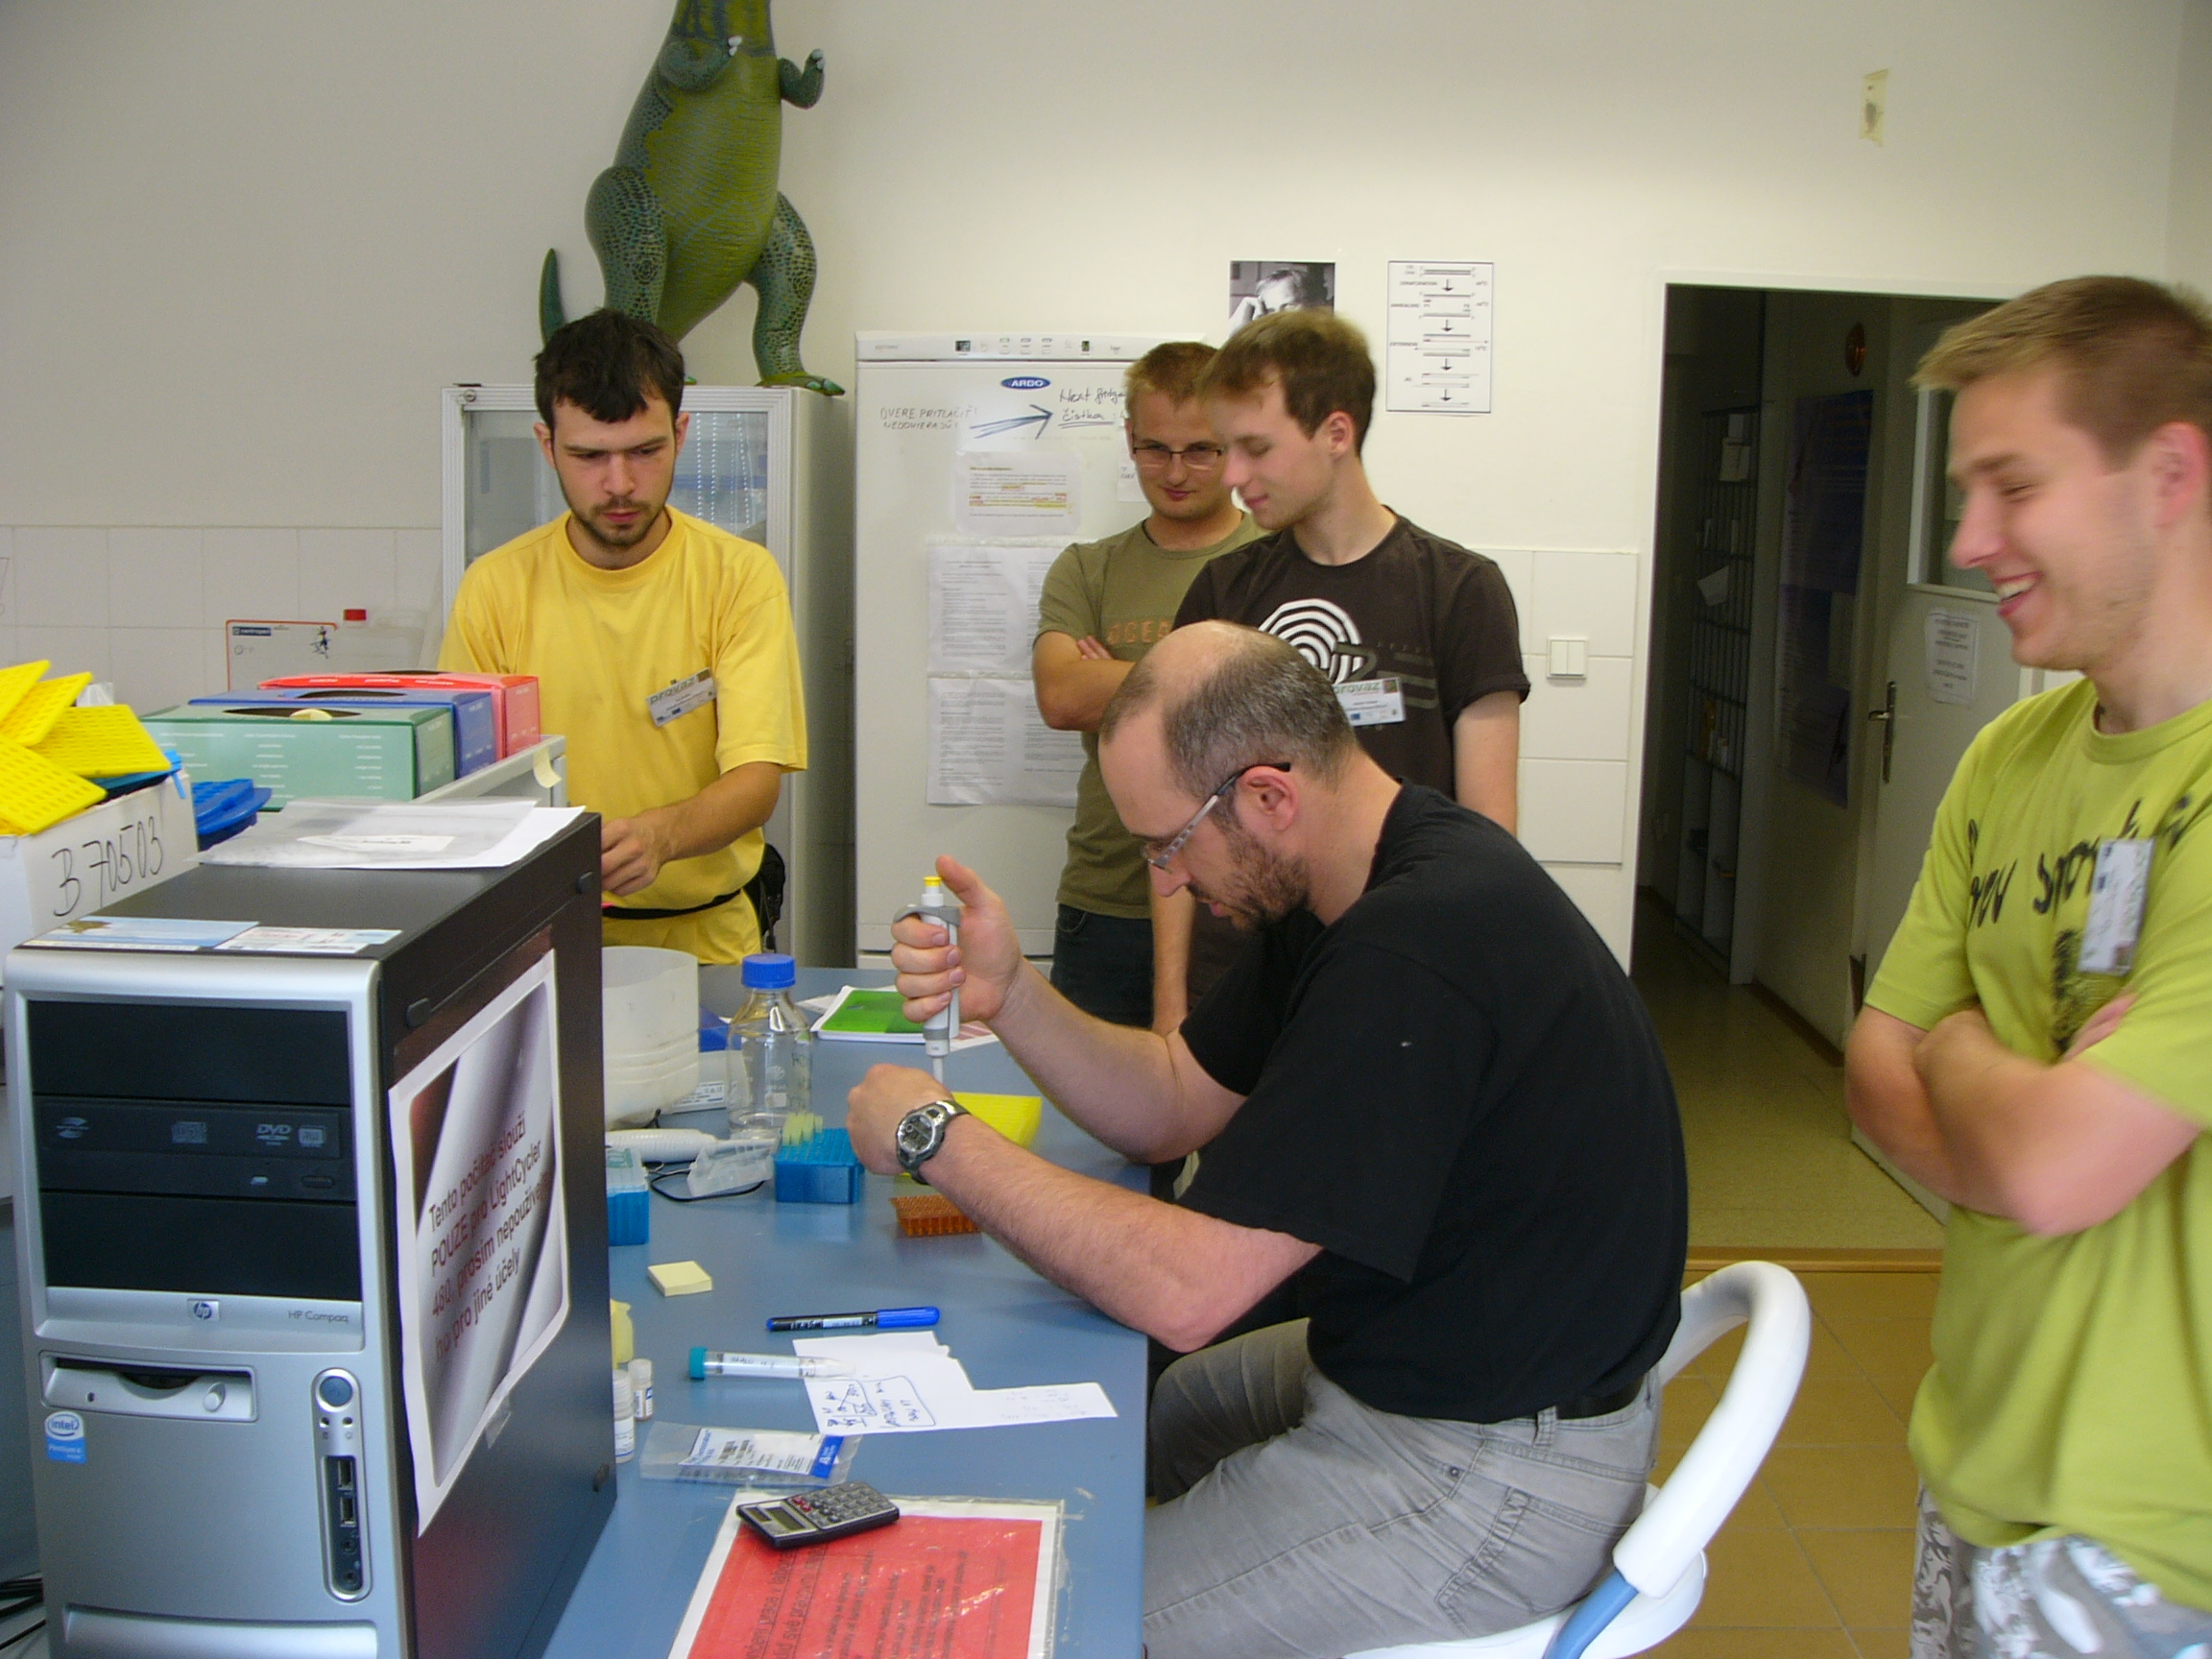 Summerschool Provaz 2012